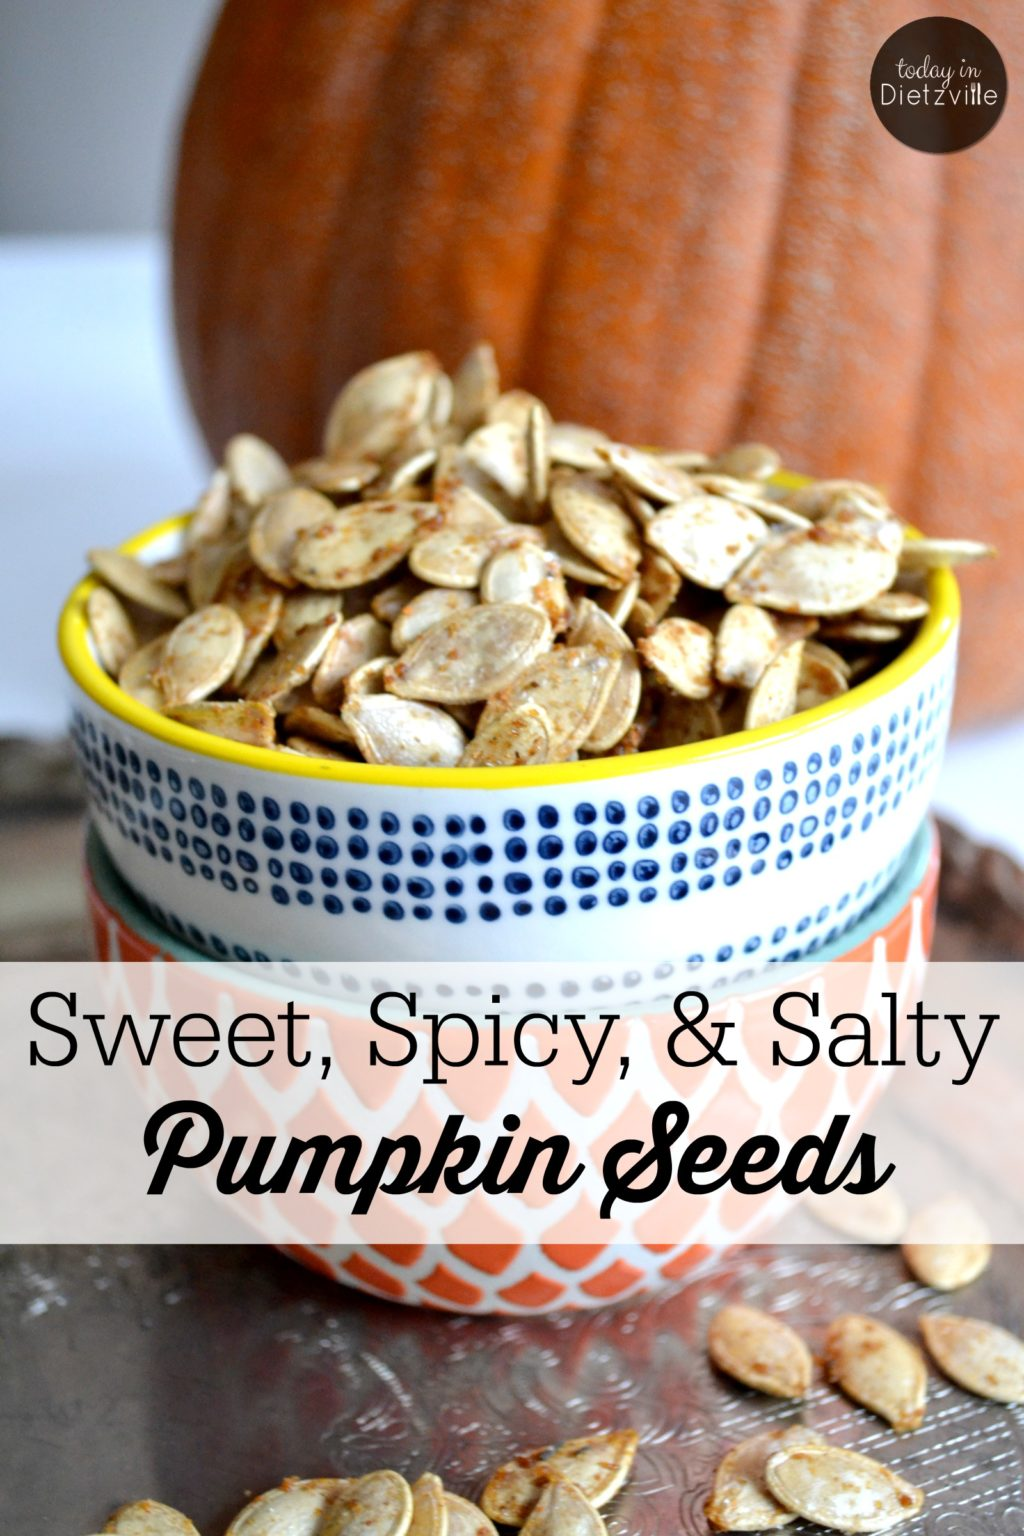 Sweet, Spicy, & Salty Pumpkin Seeds | Pumpkin seeds make an excellent, quick snack for adults and kids alike. Just a handful supplies you with a healthy dose of magnesium and immune-boosting zinc. These tasty, crispy pumpkin seeds satisfy all the cravings: a little bit sweet, a little bit spicy, and a little bit salty. | TodayInDietzville.com